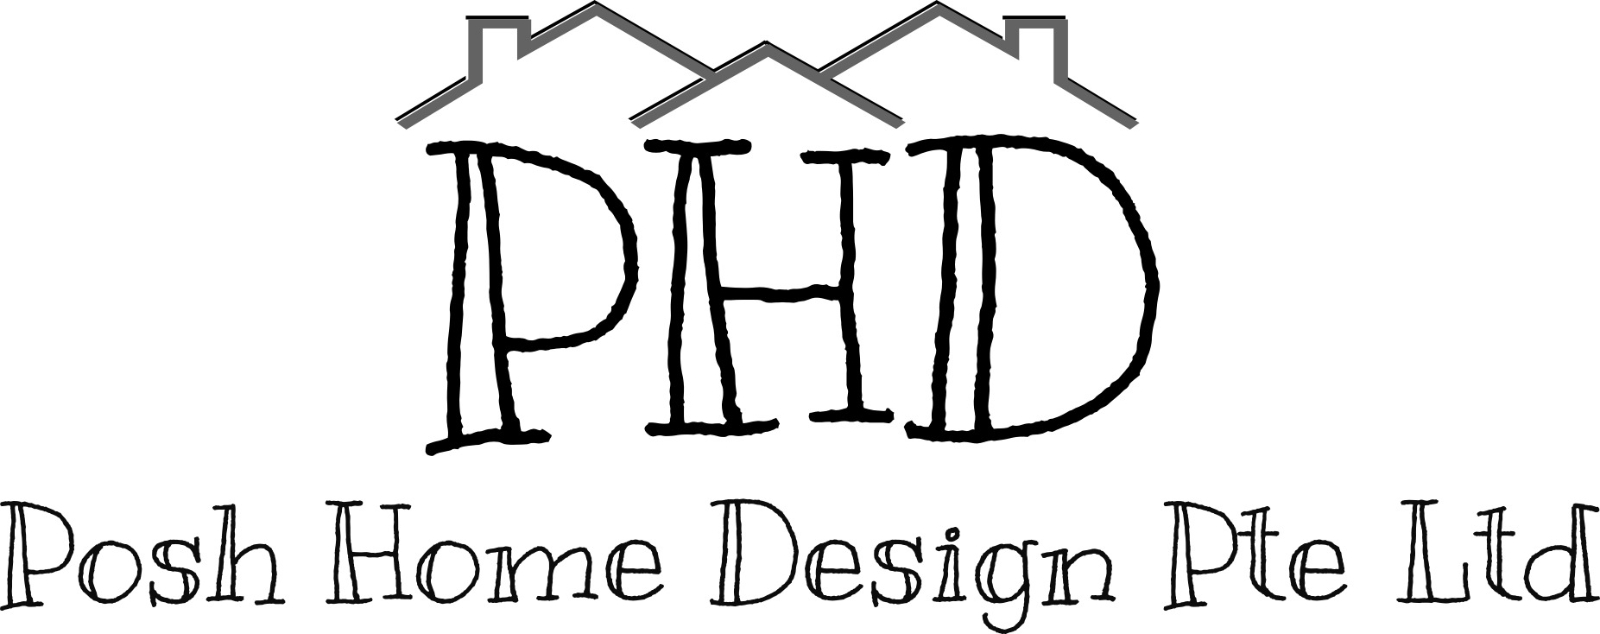 PHD POSH HOME DESIGN PTE. LTD.